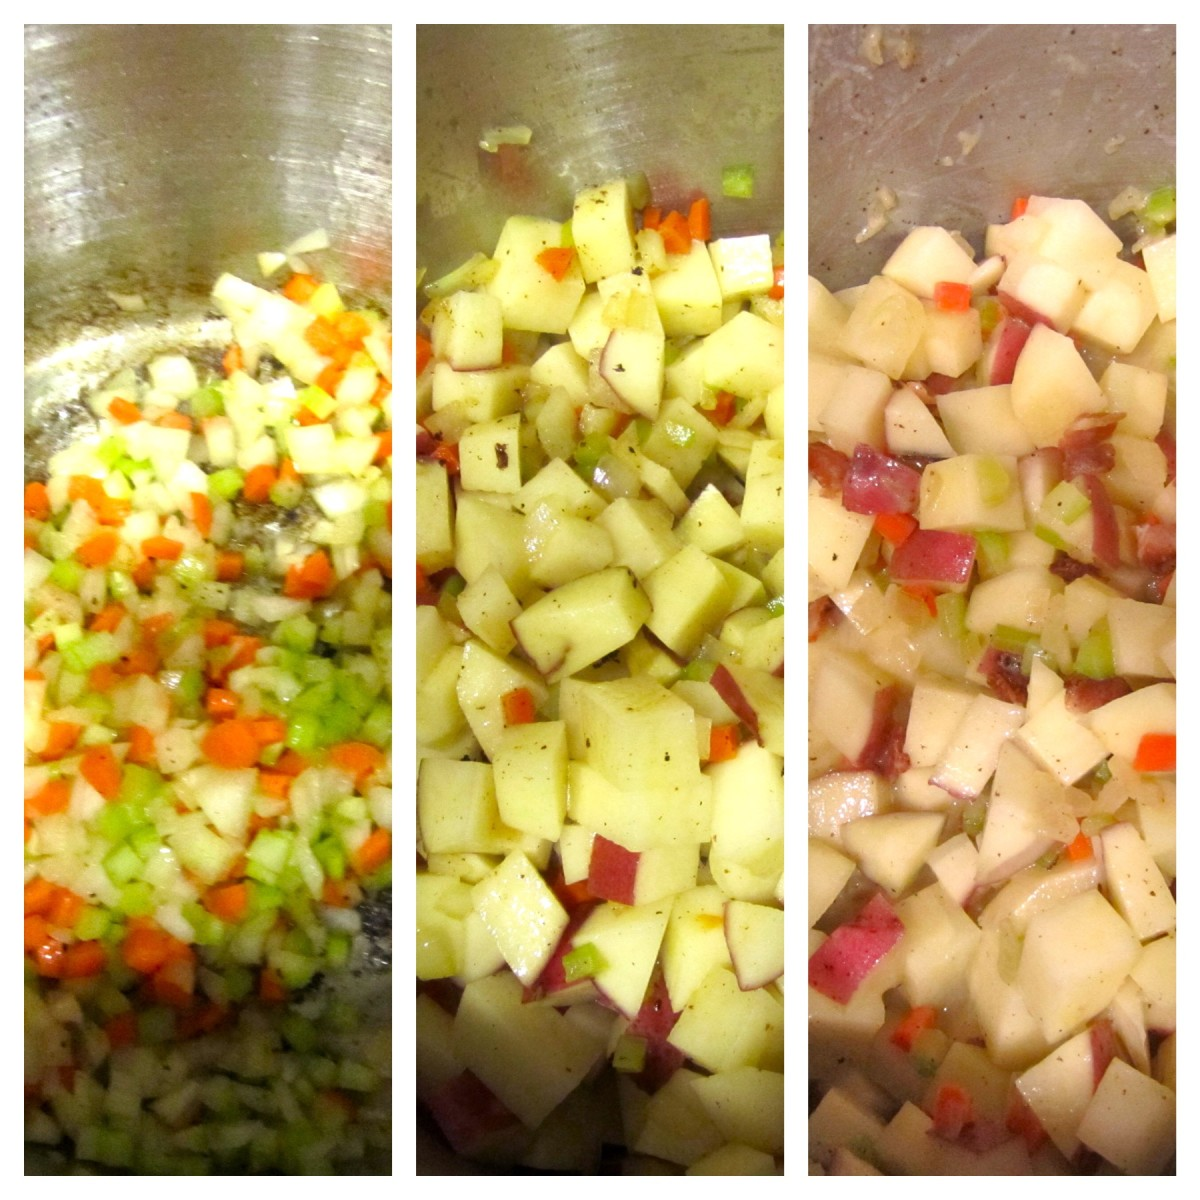 Left: Vegetables being sauteed in the stock pot. Center: Vegetables with the potatoes added and stirred. Right: All vegetables mixed with the flour for five minutes. (Step 2 and 3)